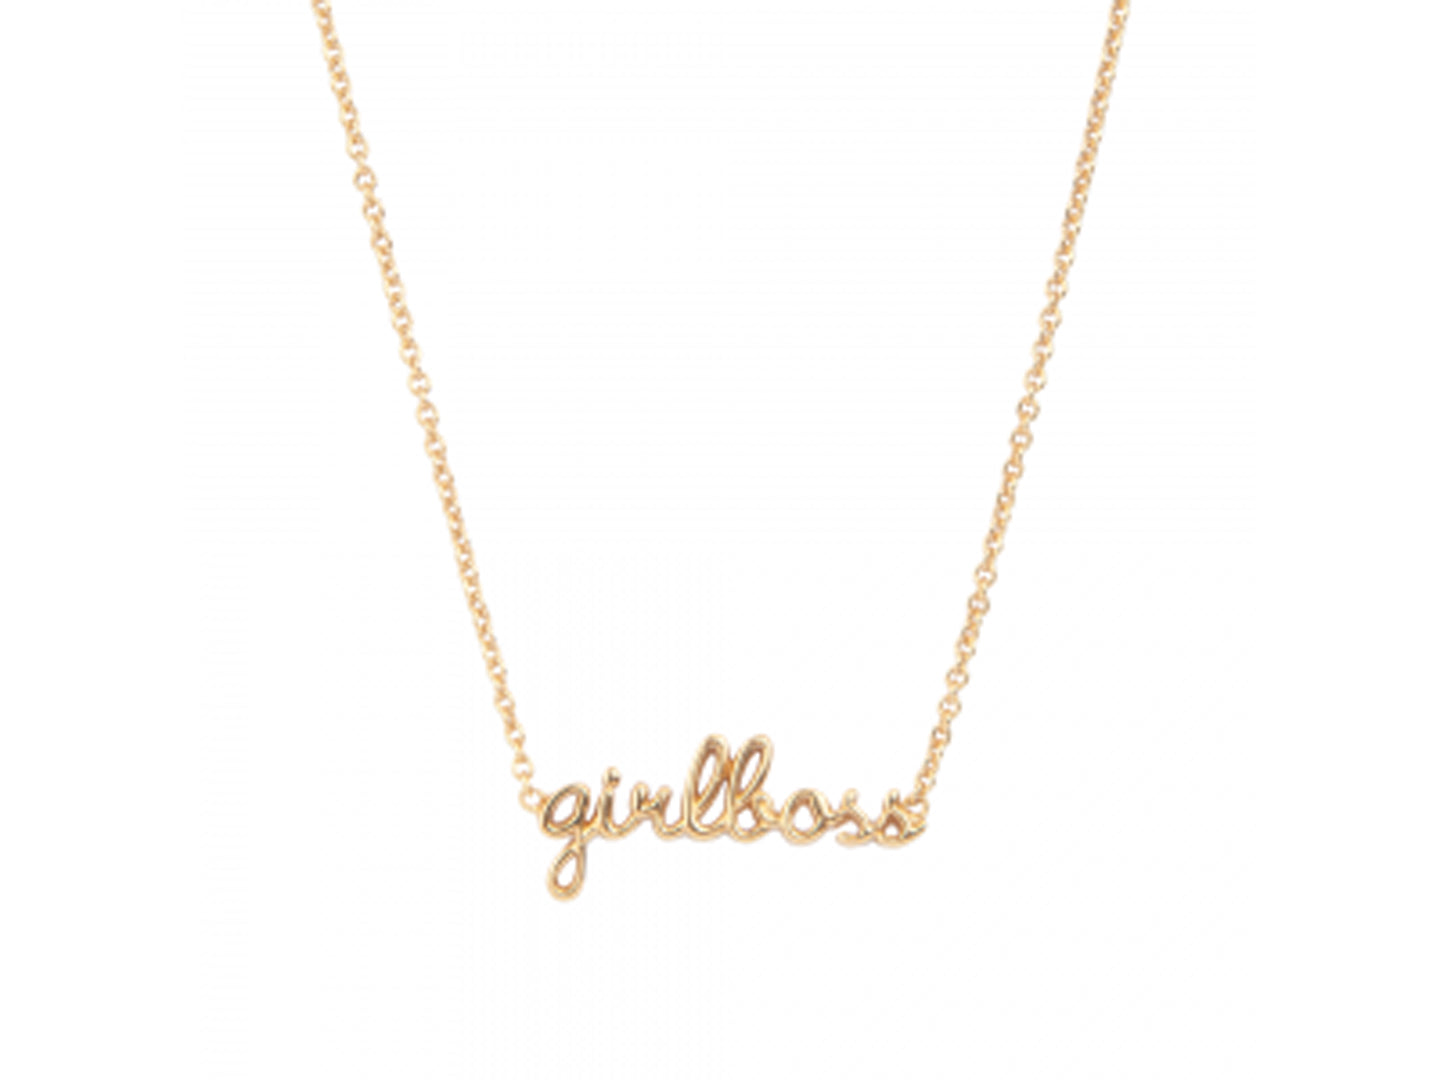 GIRLBOSS NECKLACE, GOLD